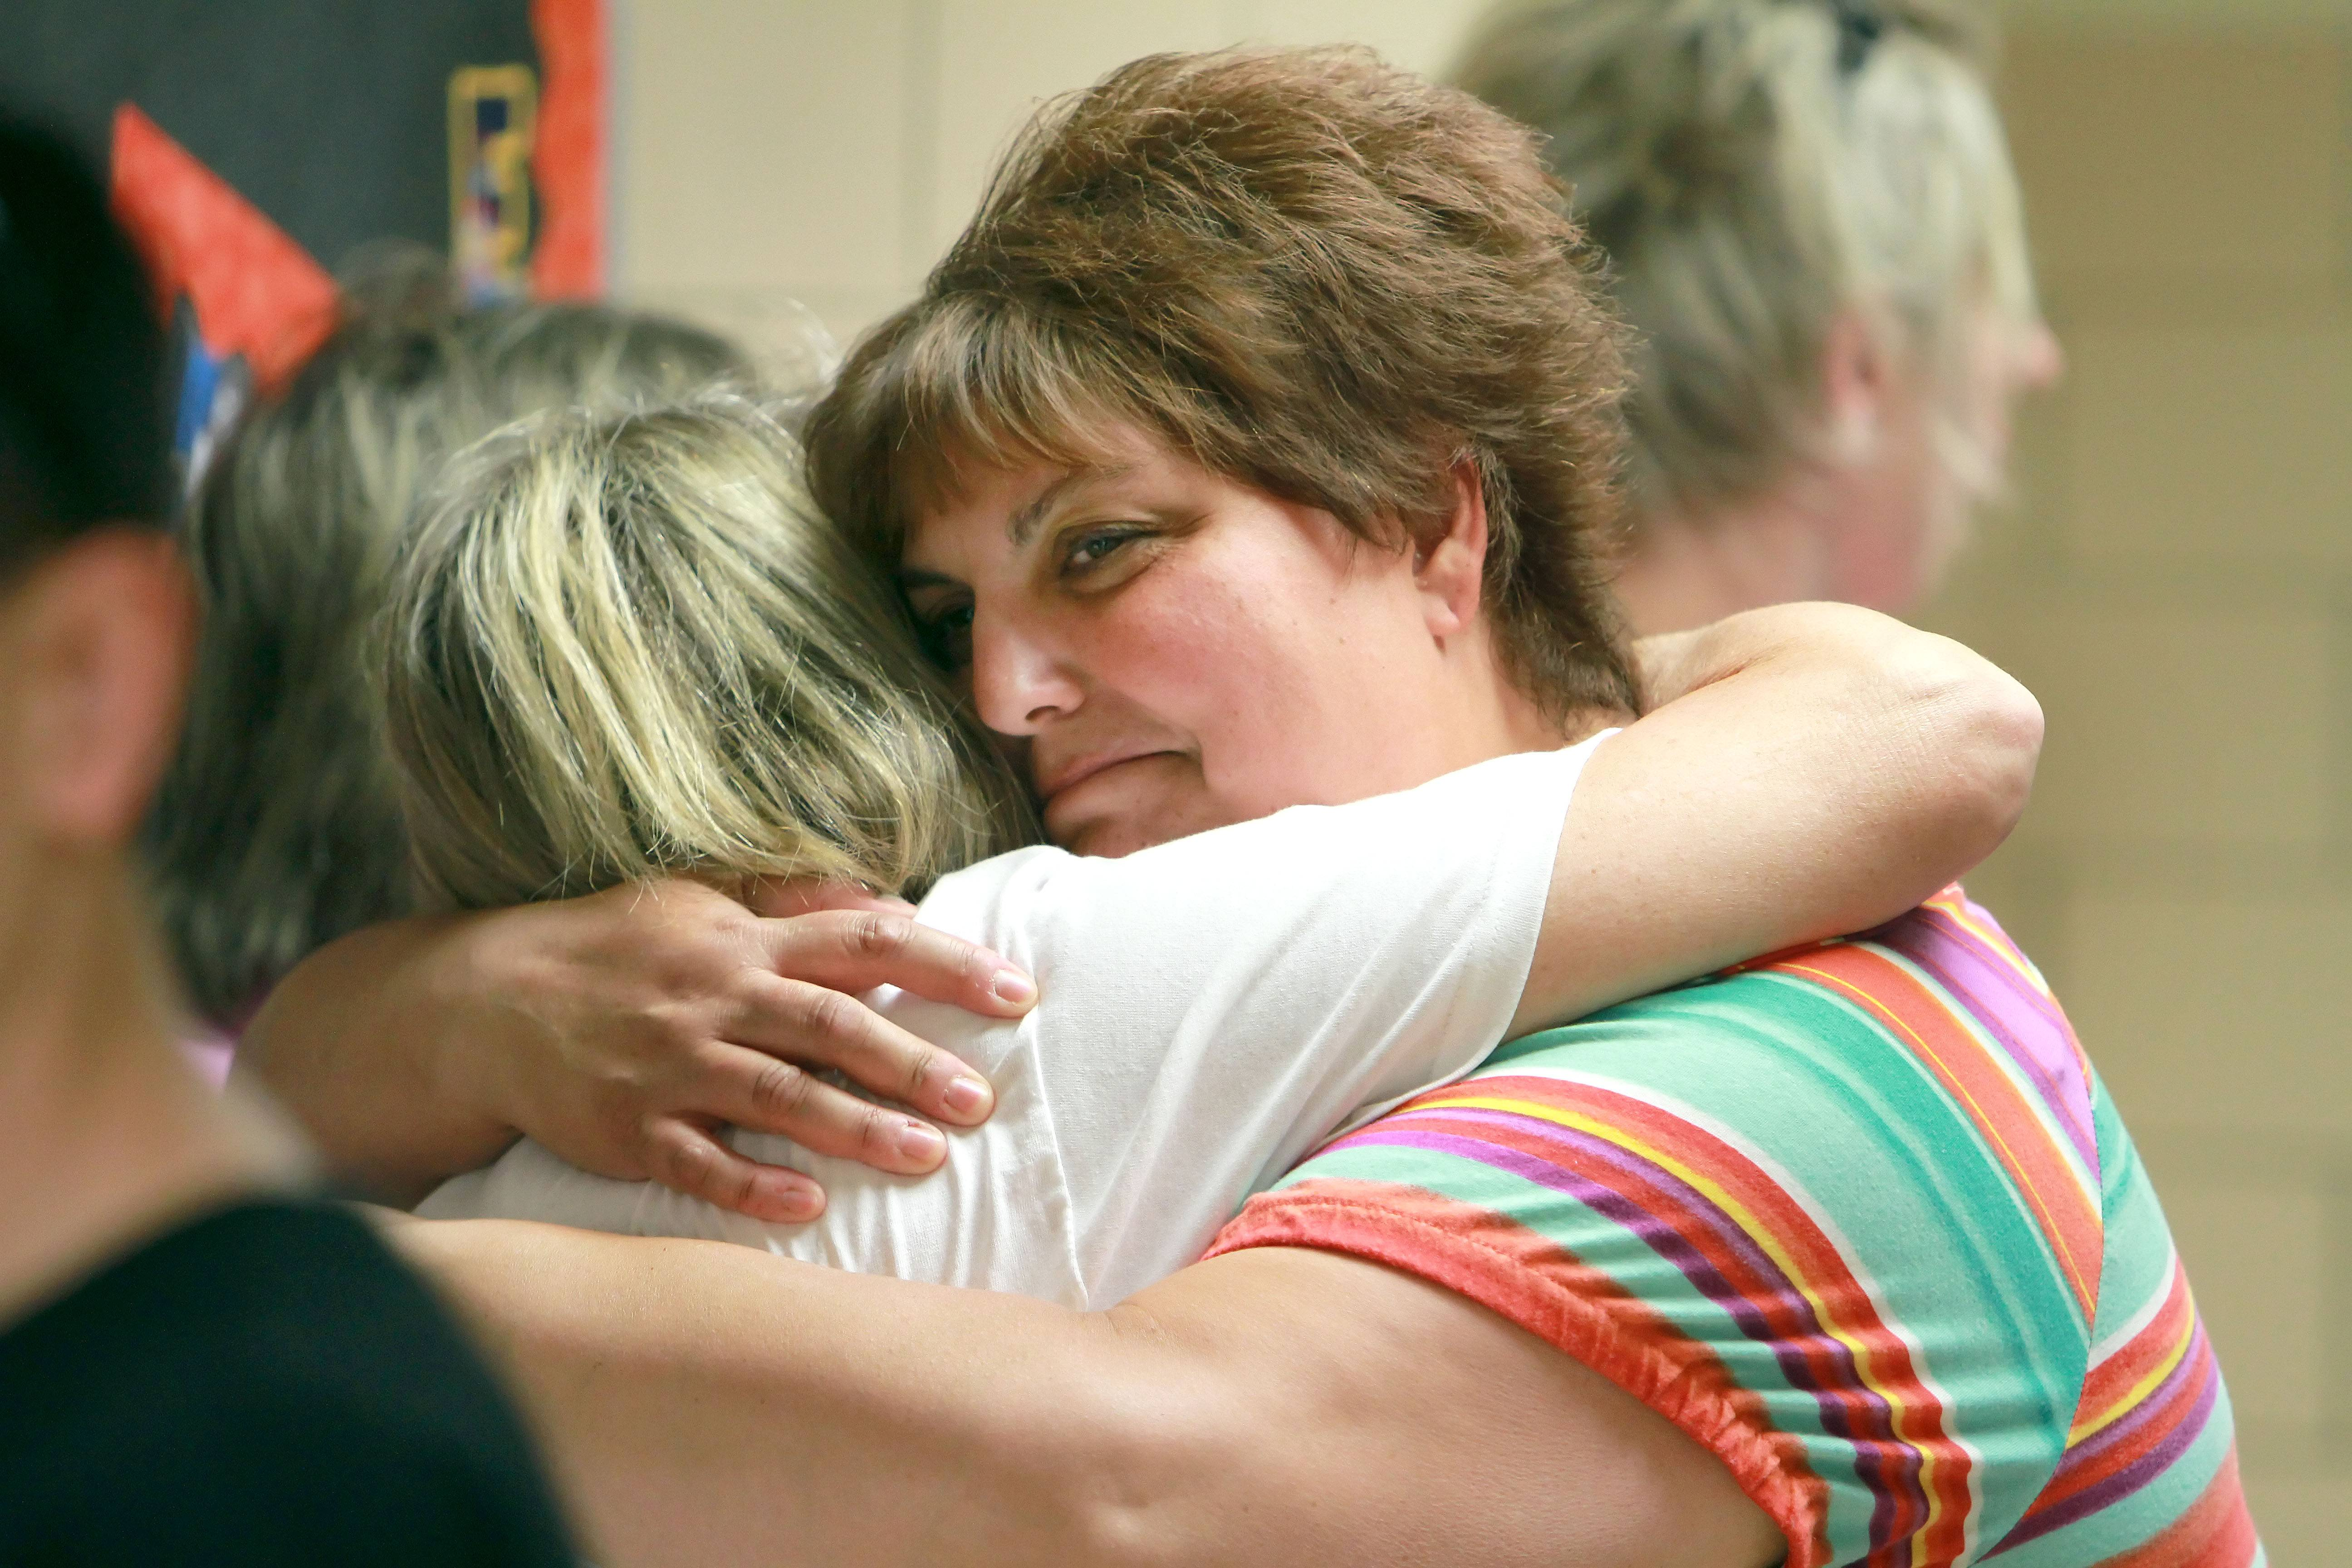 Carleen Sliwa, right, hugs Emily Rosemann as alumni of Pleviak Elementary School got a chance to say goodbye to the building during an open house Tuesday in Lake Villa.